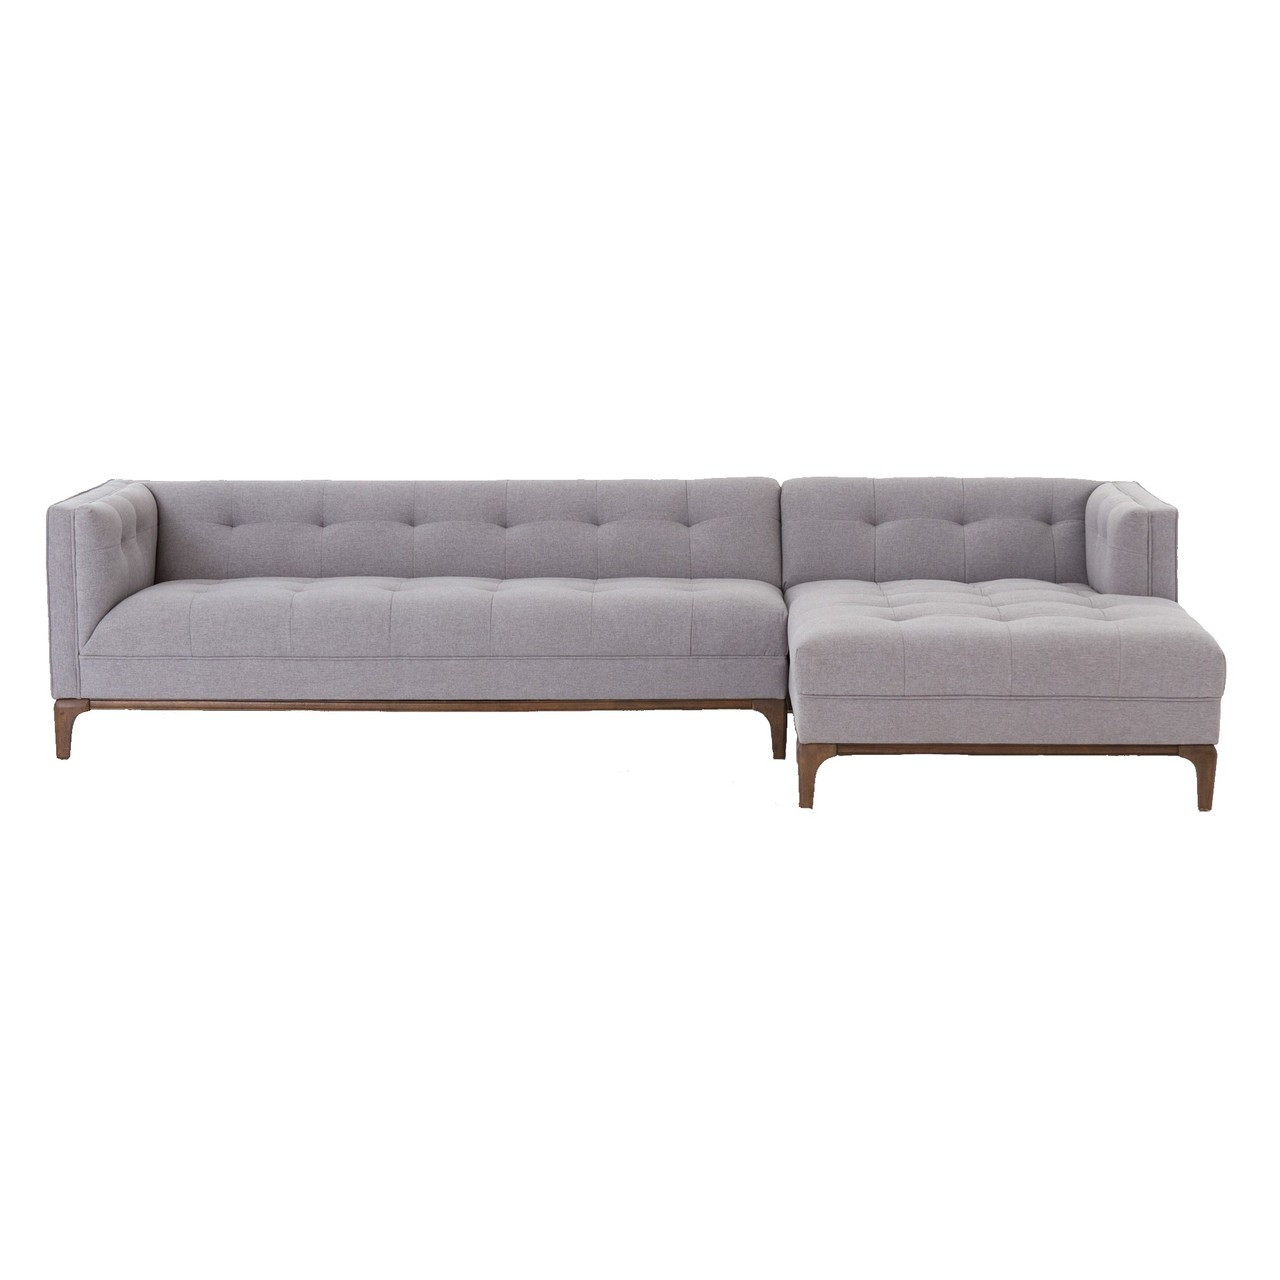 Dylan Mid Century Modern Tufted 2 Piece Sectional Sofa Zin Home